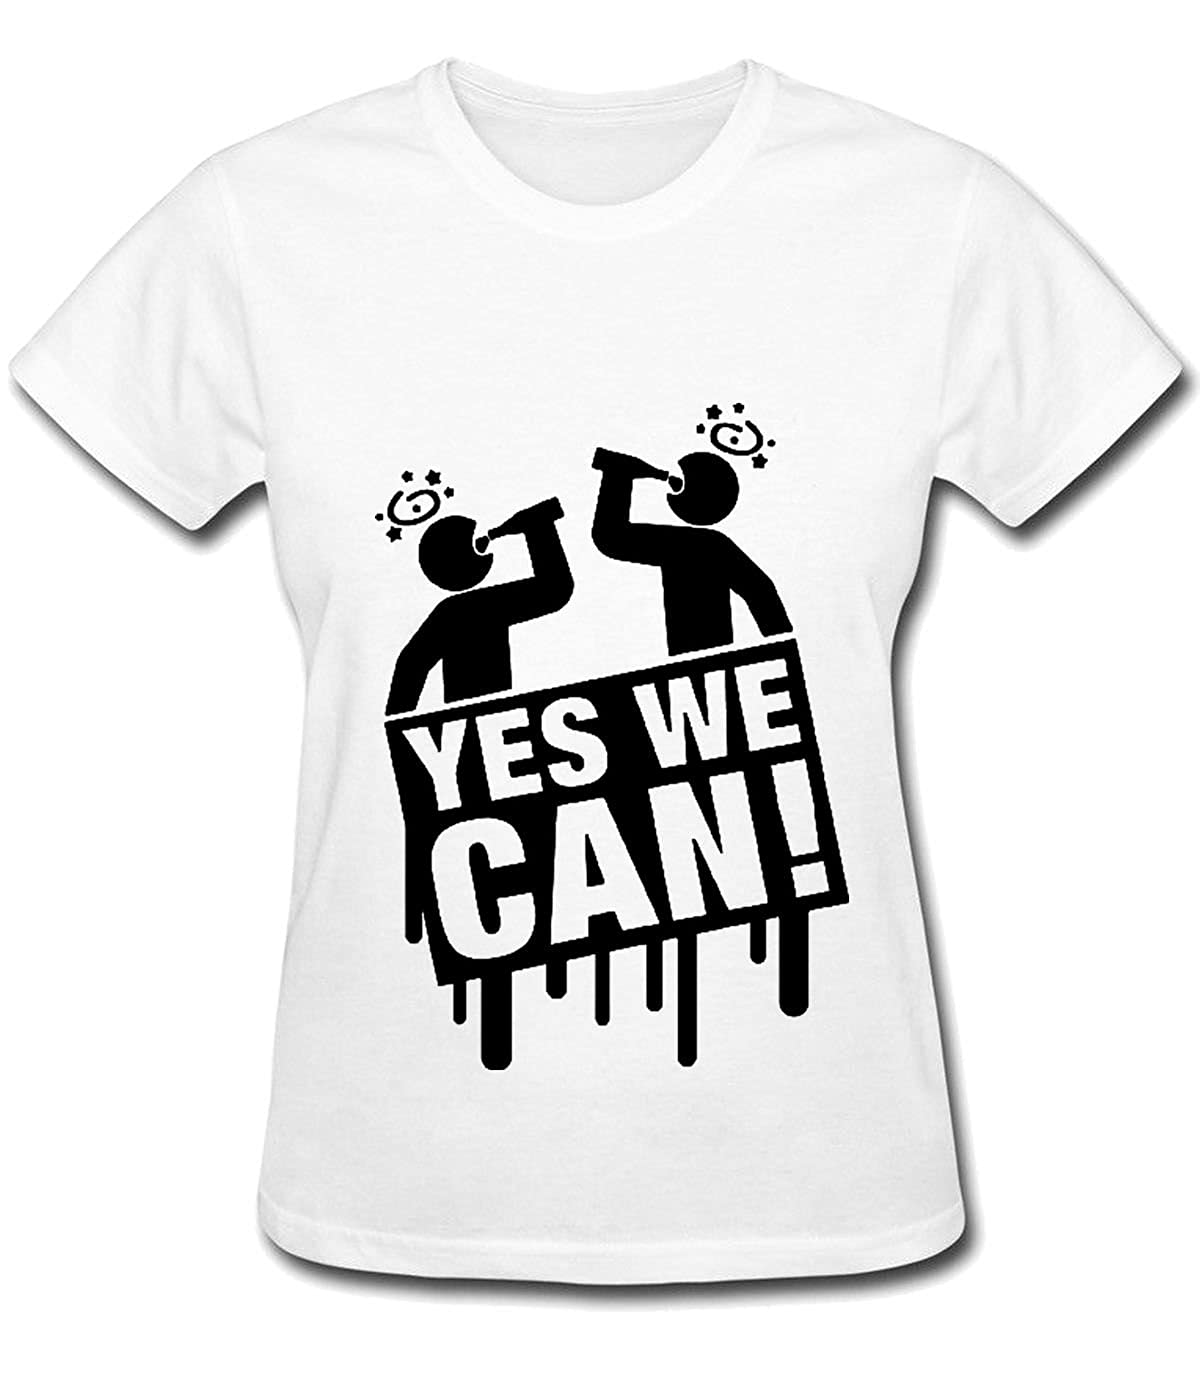 2cbad93fb152 Amazon.com  sansiwoman yes we can Tshirts for Men  Clothing